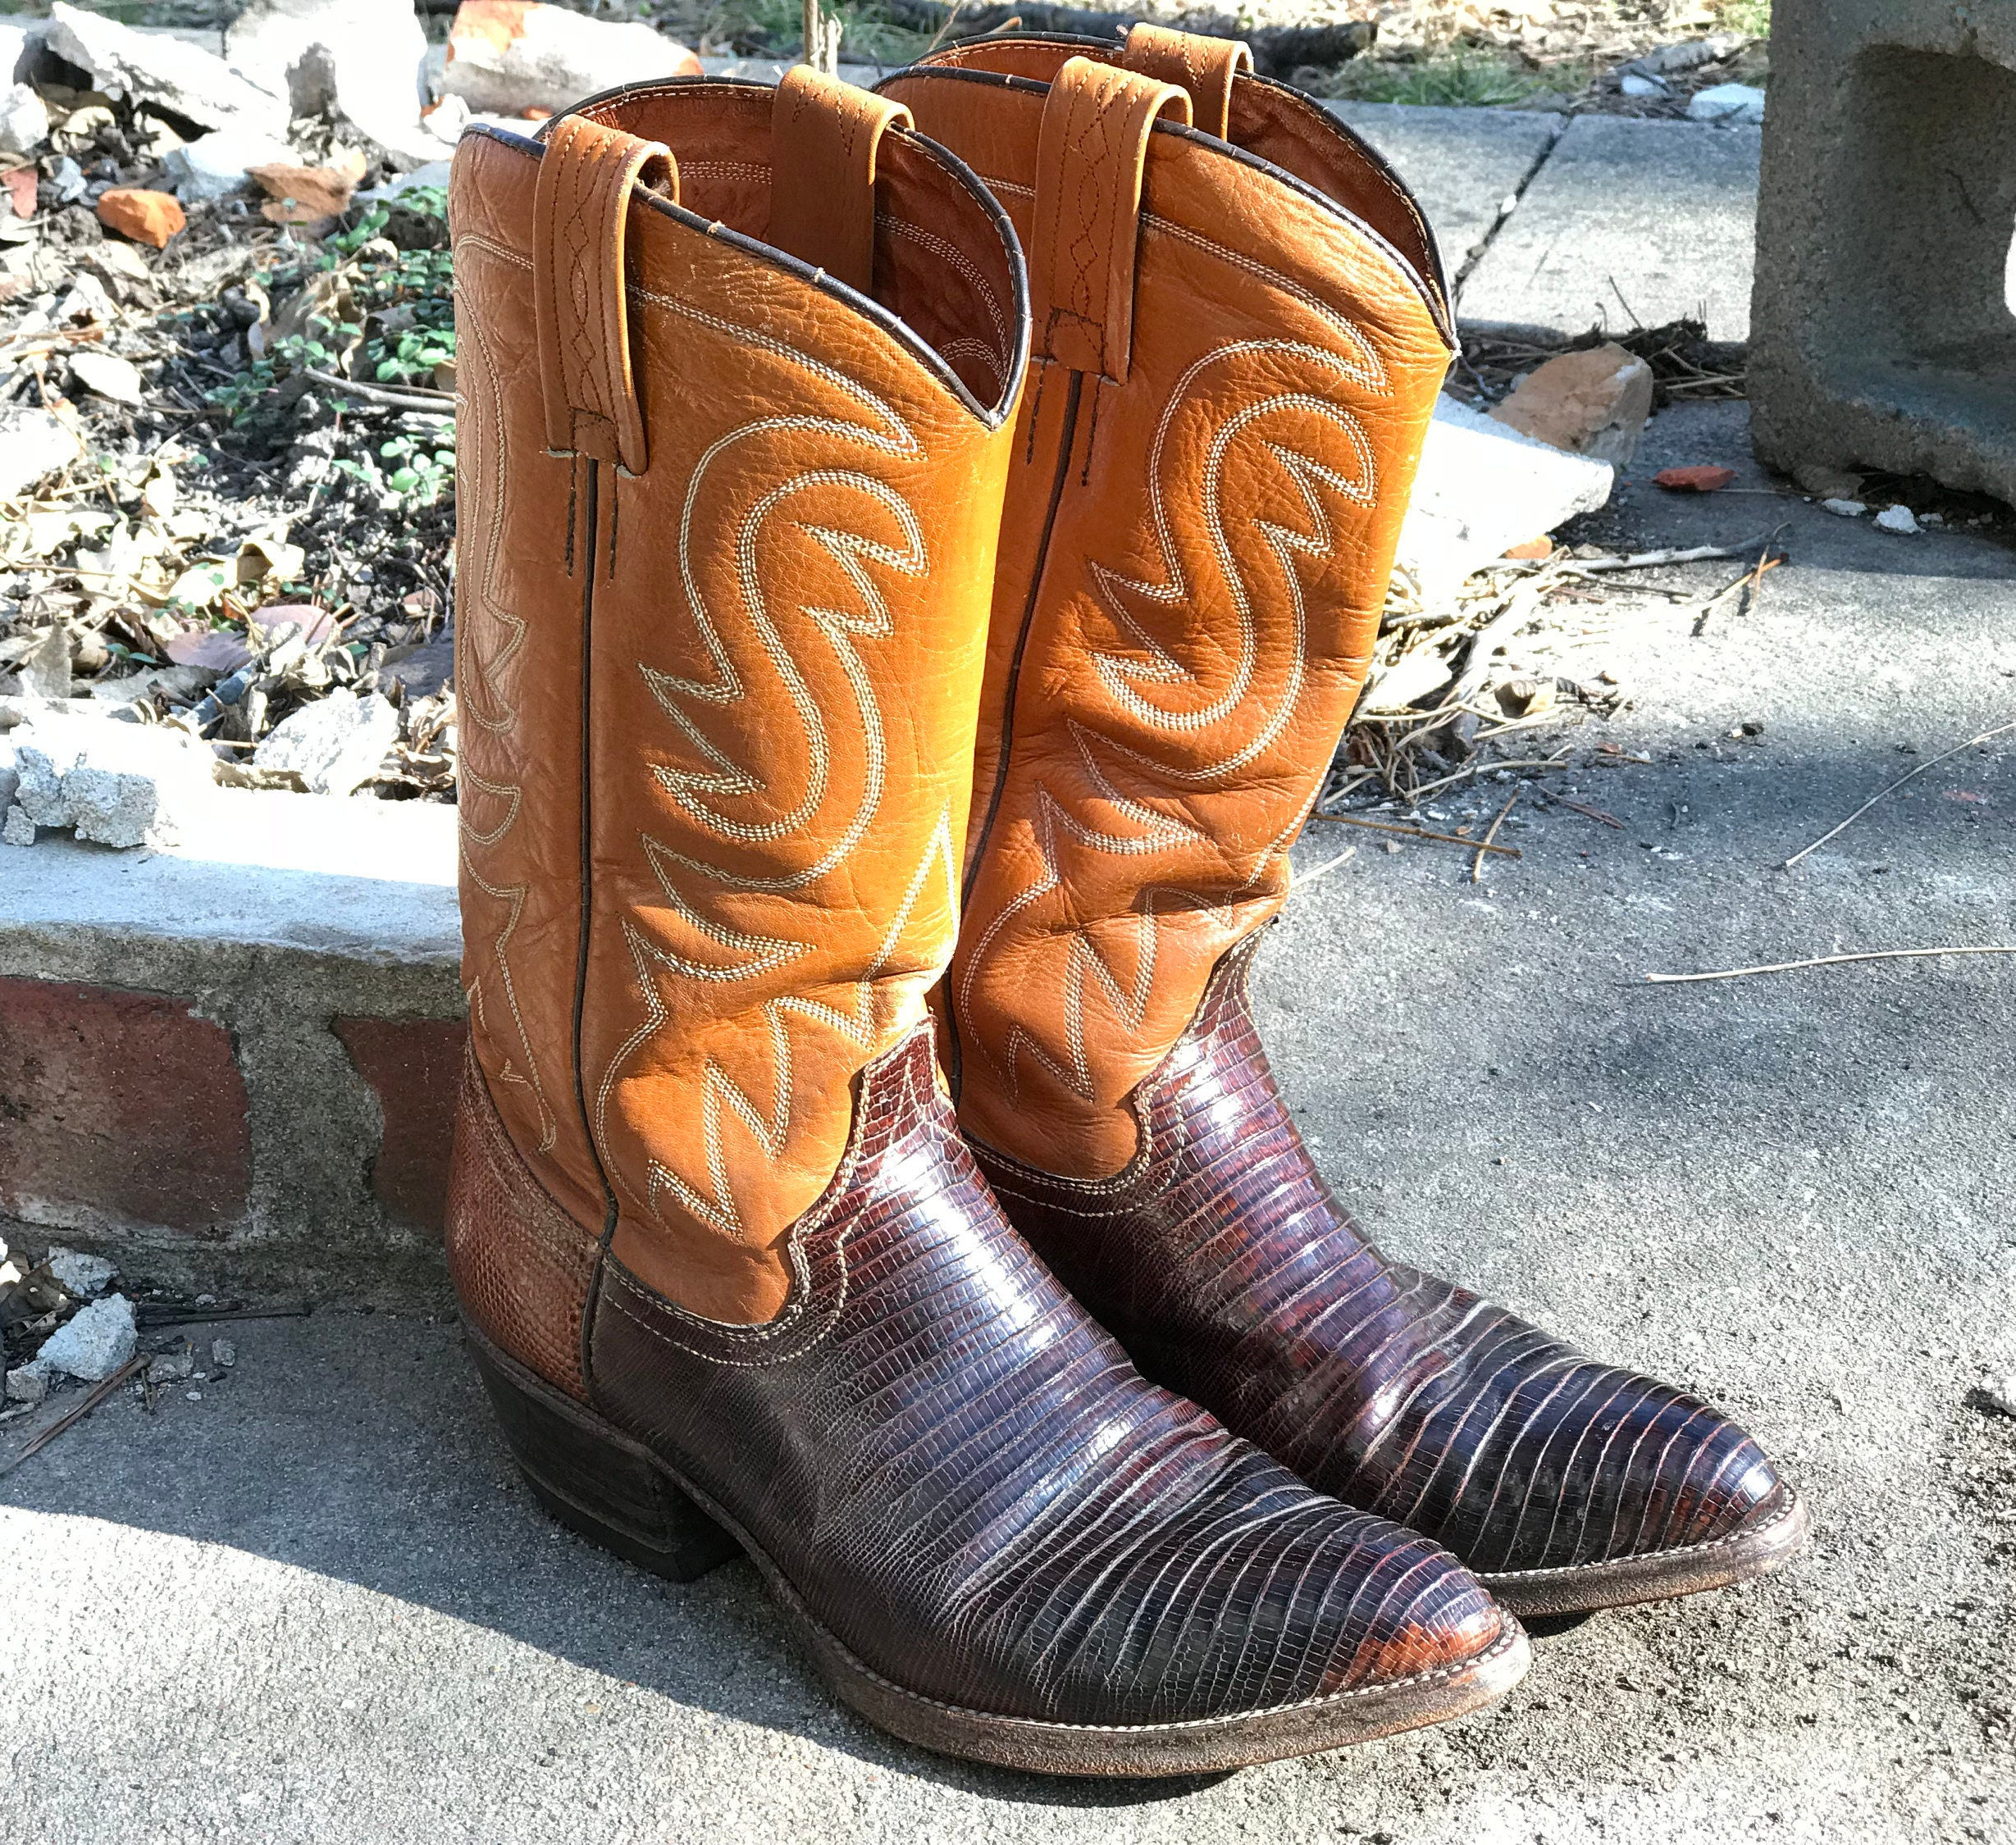 Wrangler Cowboy Cowgirl Boots/WB Masterson Special Edition/2  Tone Brown/Traditional Style/Pointed Toe/Mens 7 Womens 9/Western Wear/1960s 70